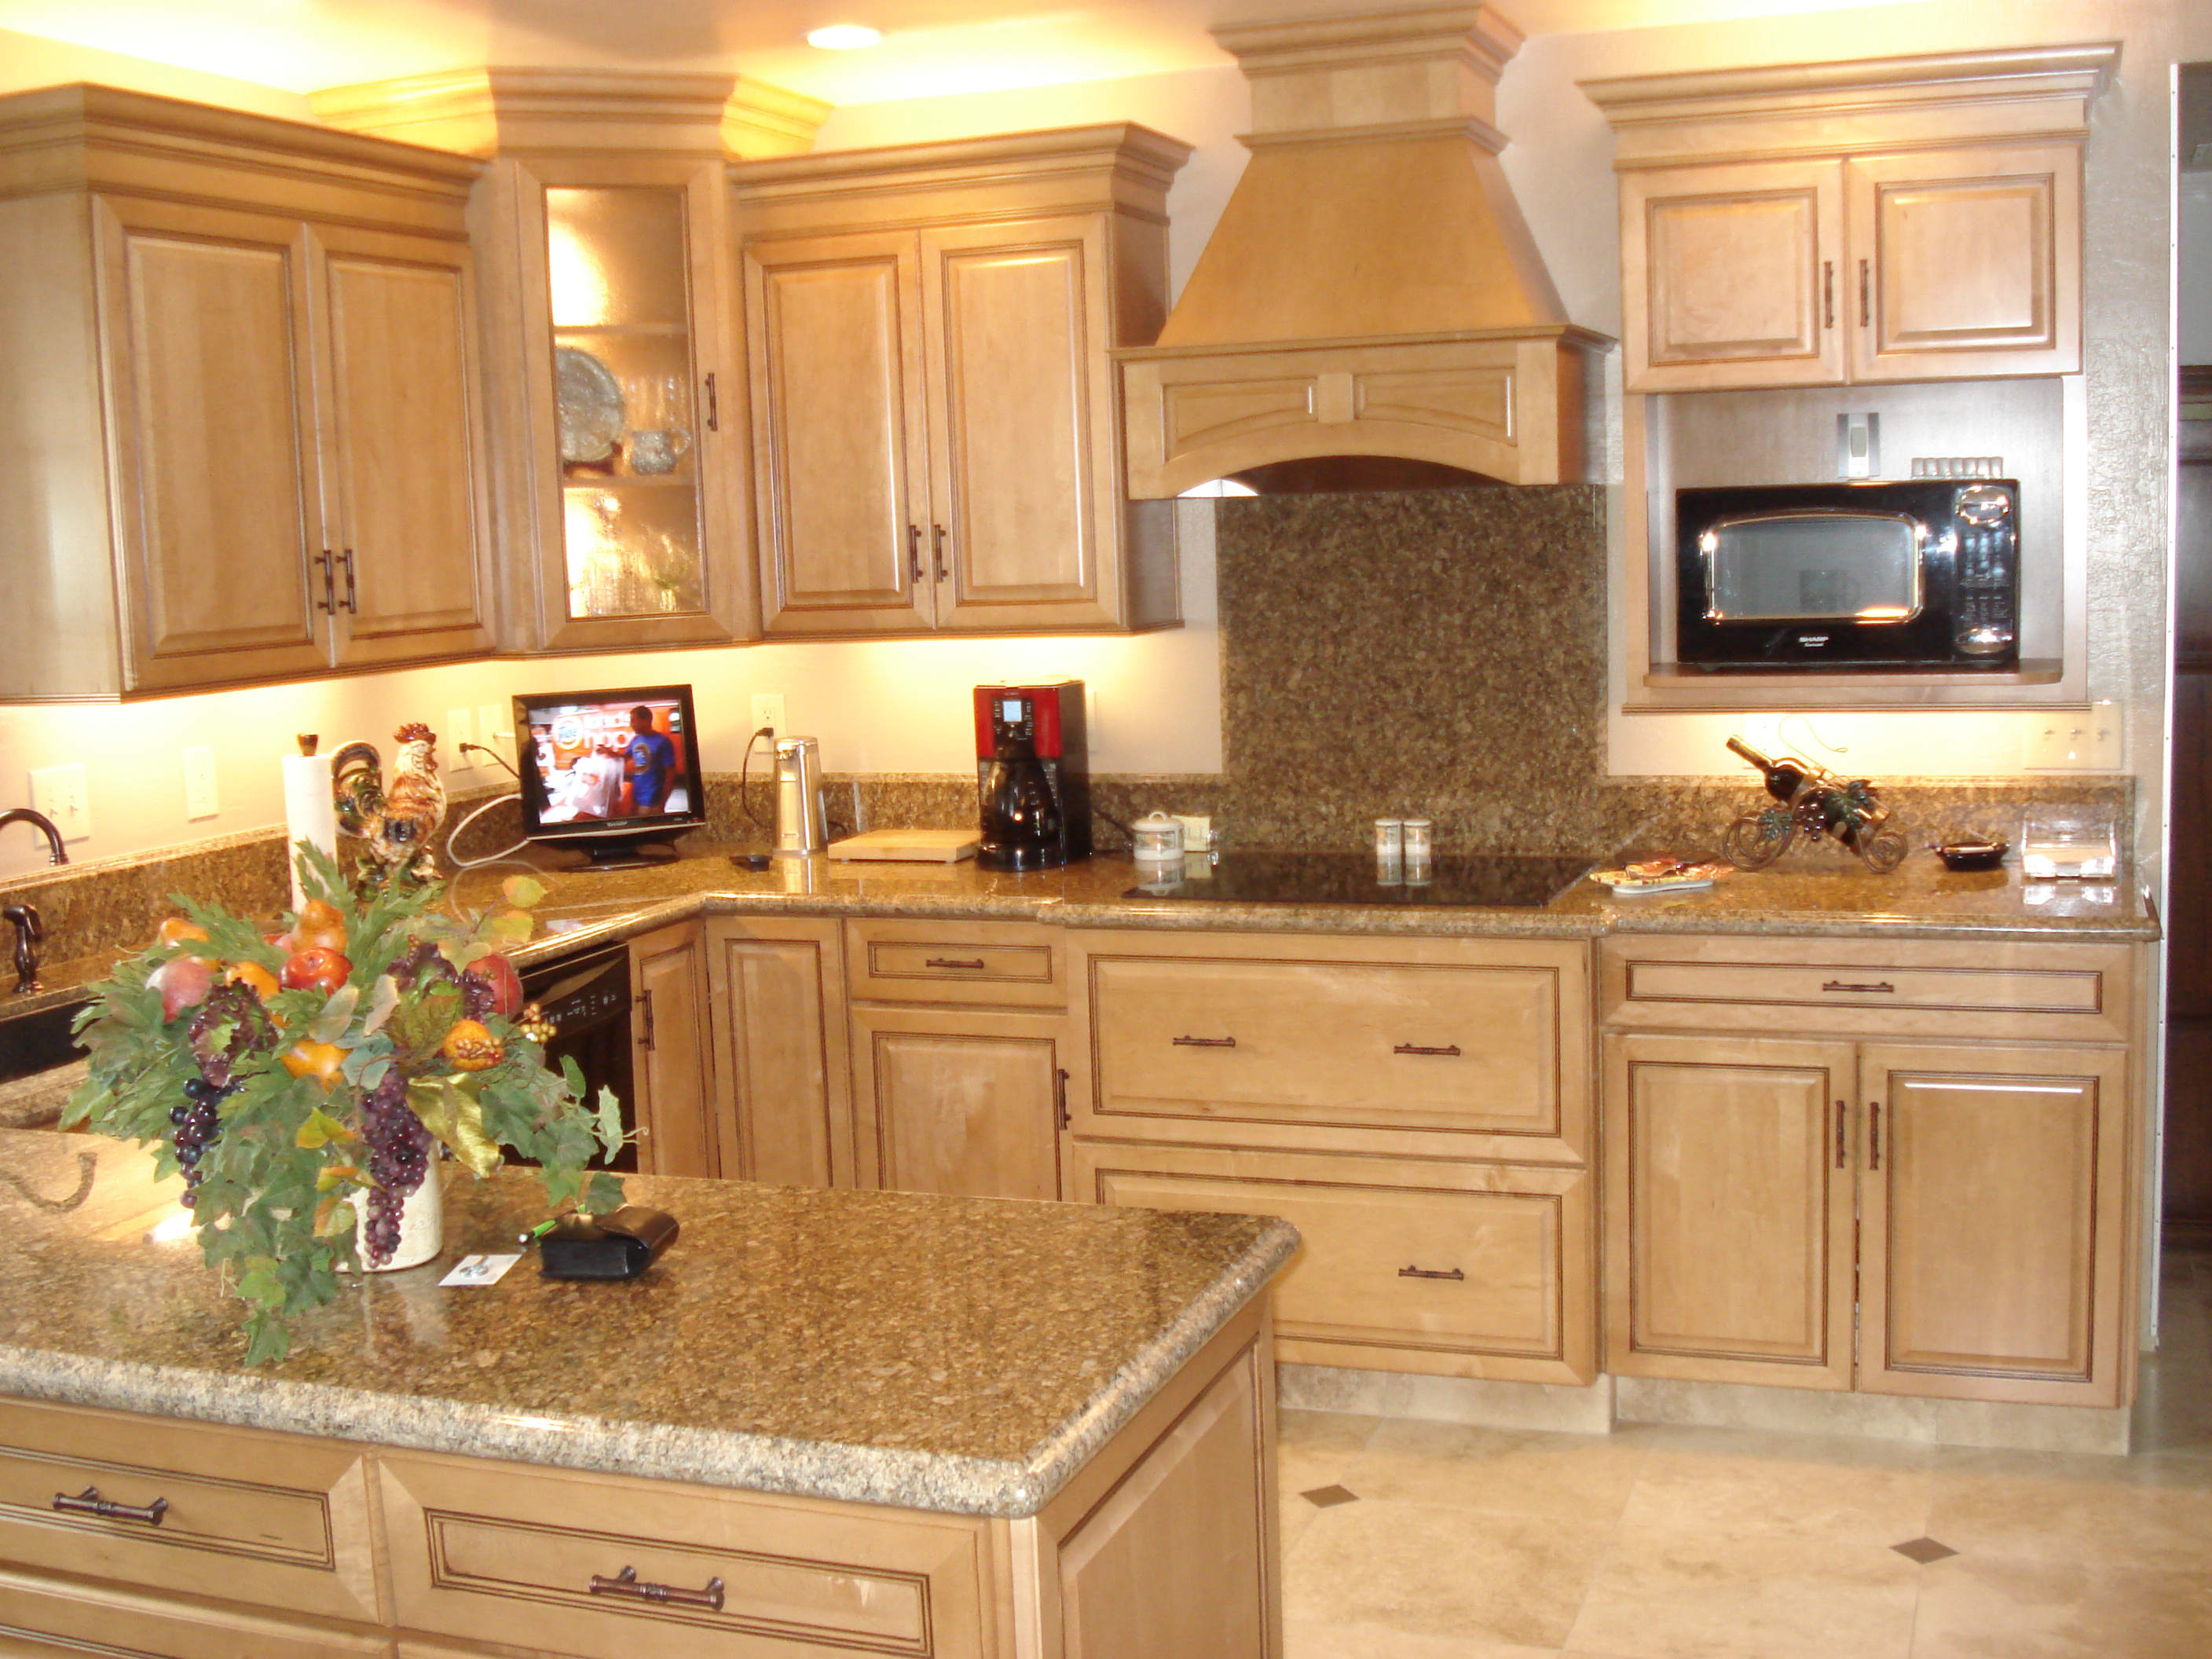 Kitchen remodels absolute electric for Kitchen remodel ideas pictures